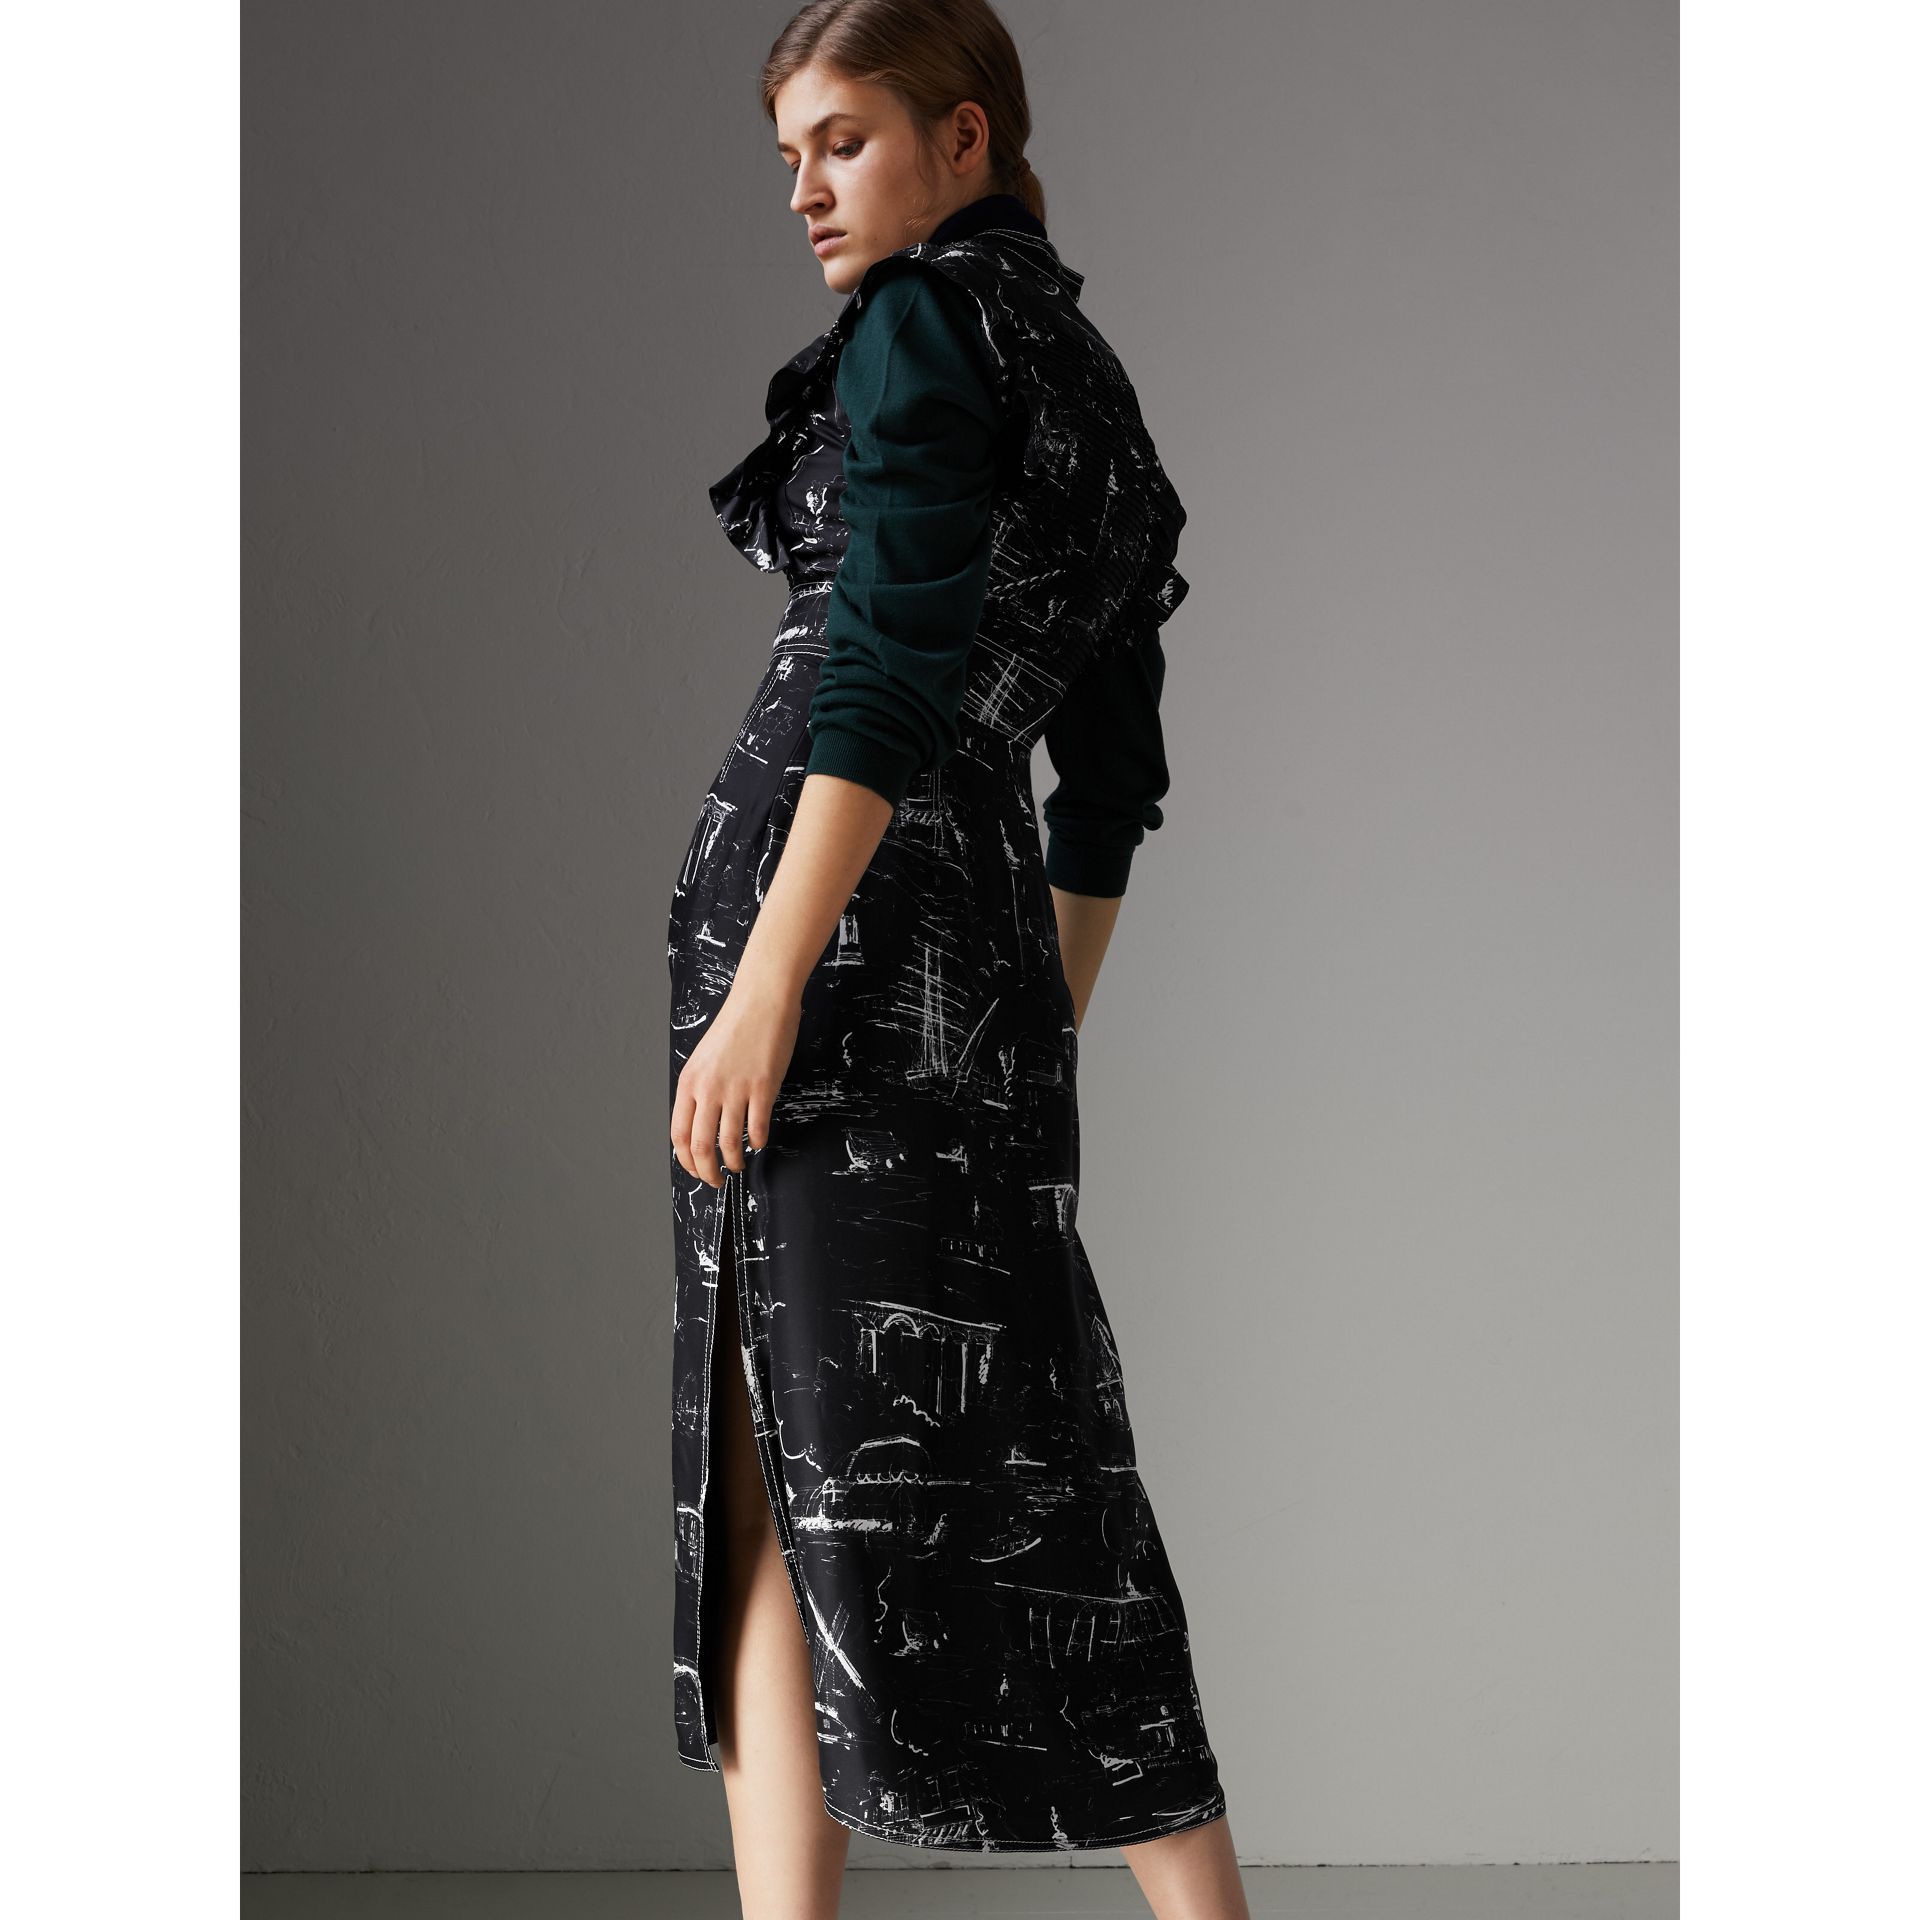 Ruffle Detail Landmark Print Silk Dress in Black - Women | Burberry United Kingdom - gallery image 2